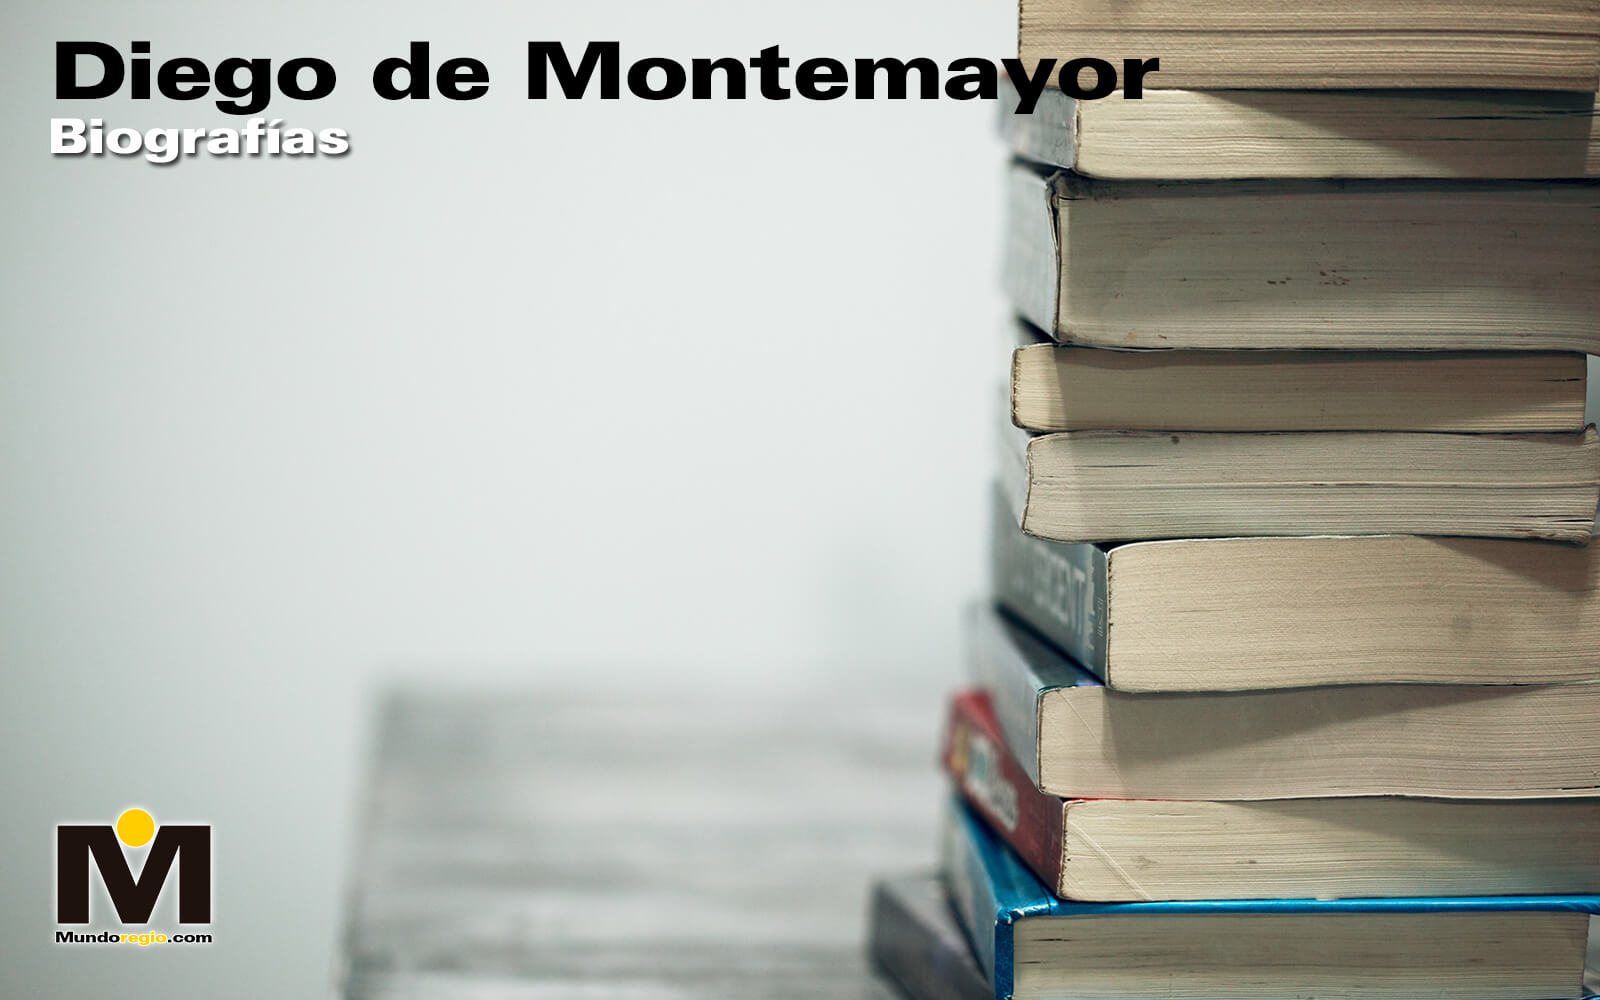 Diego de Montemayor